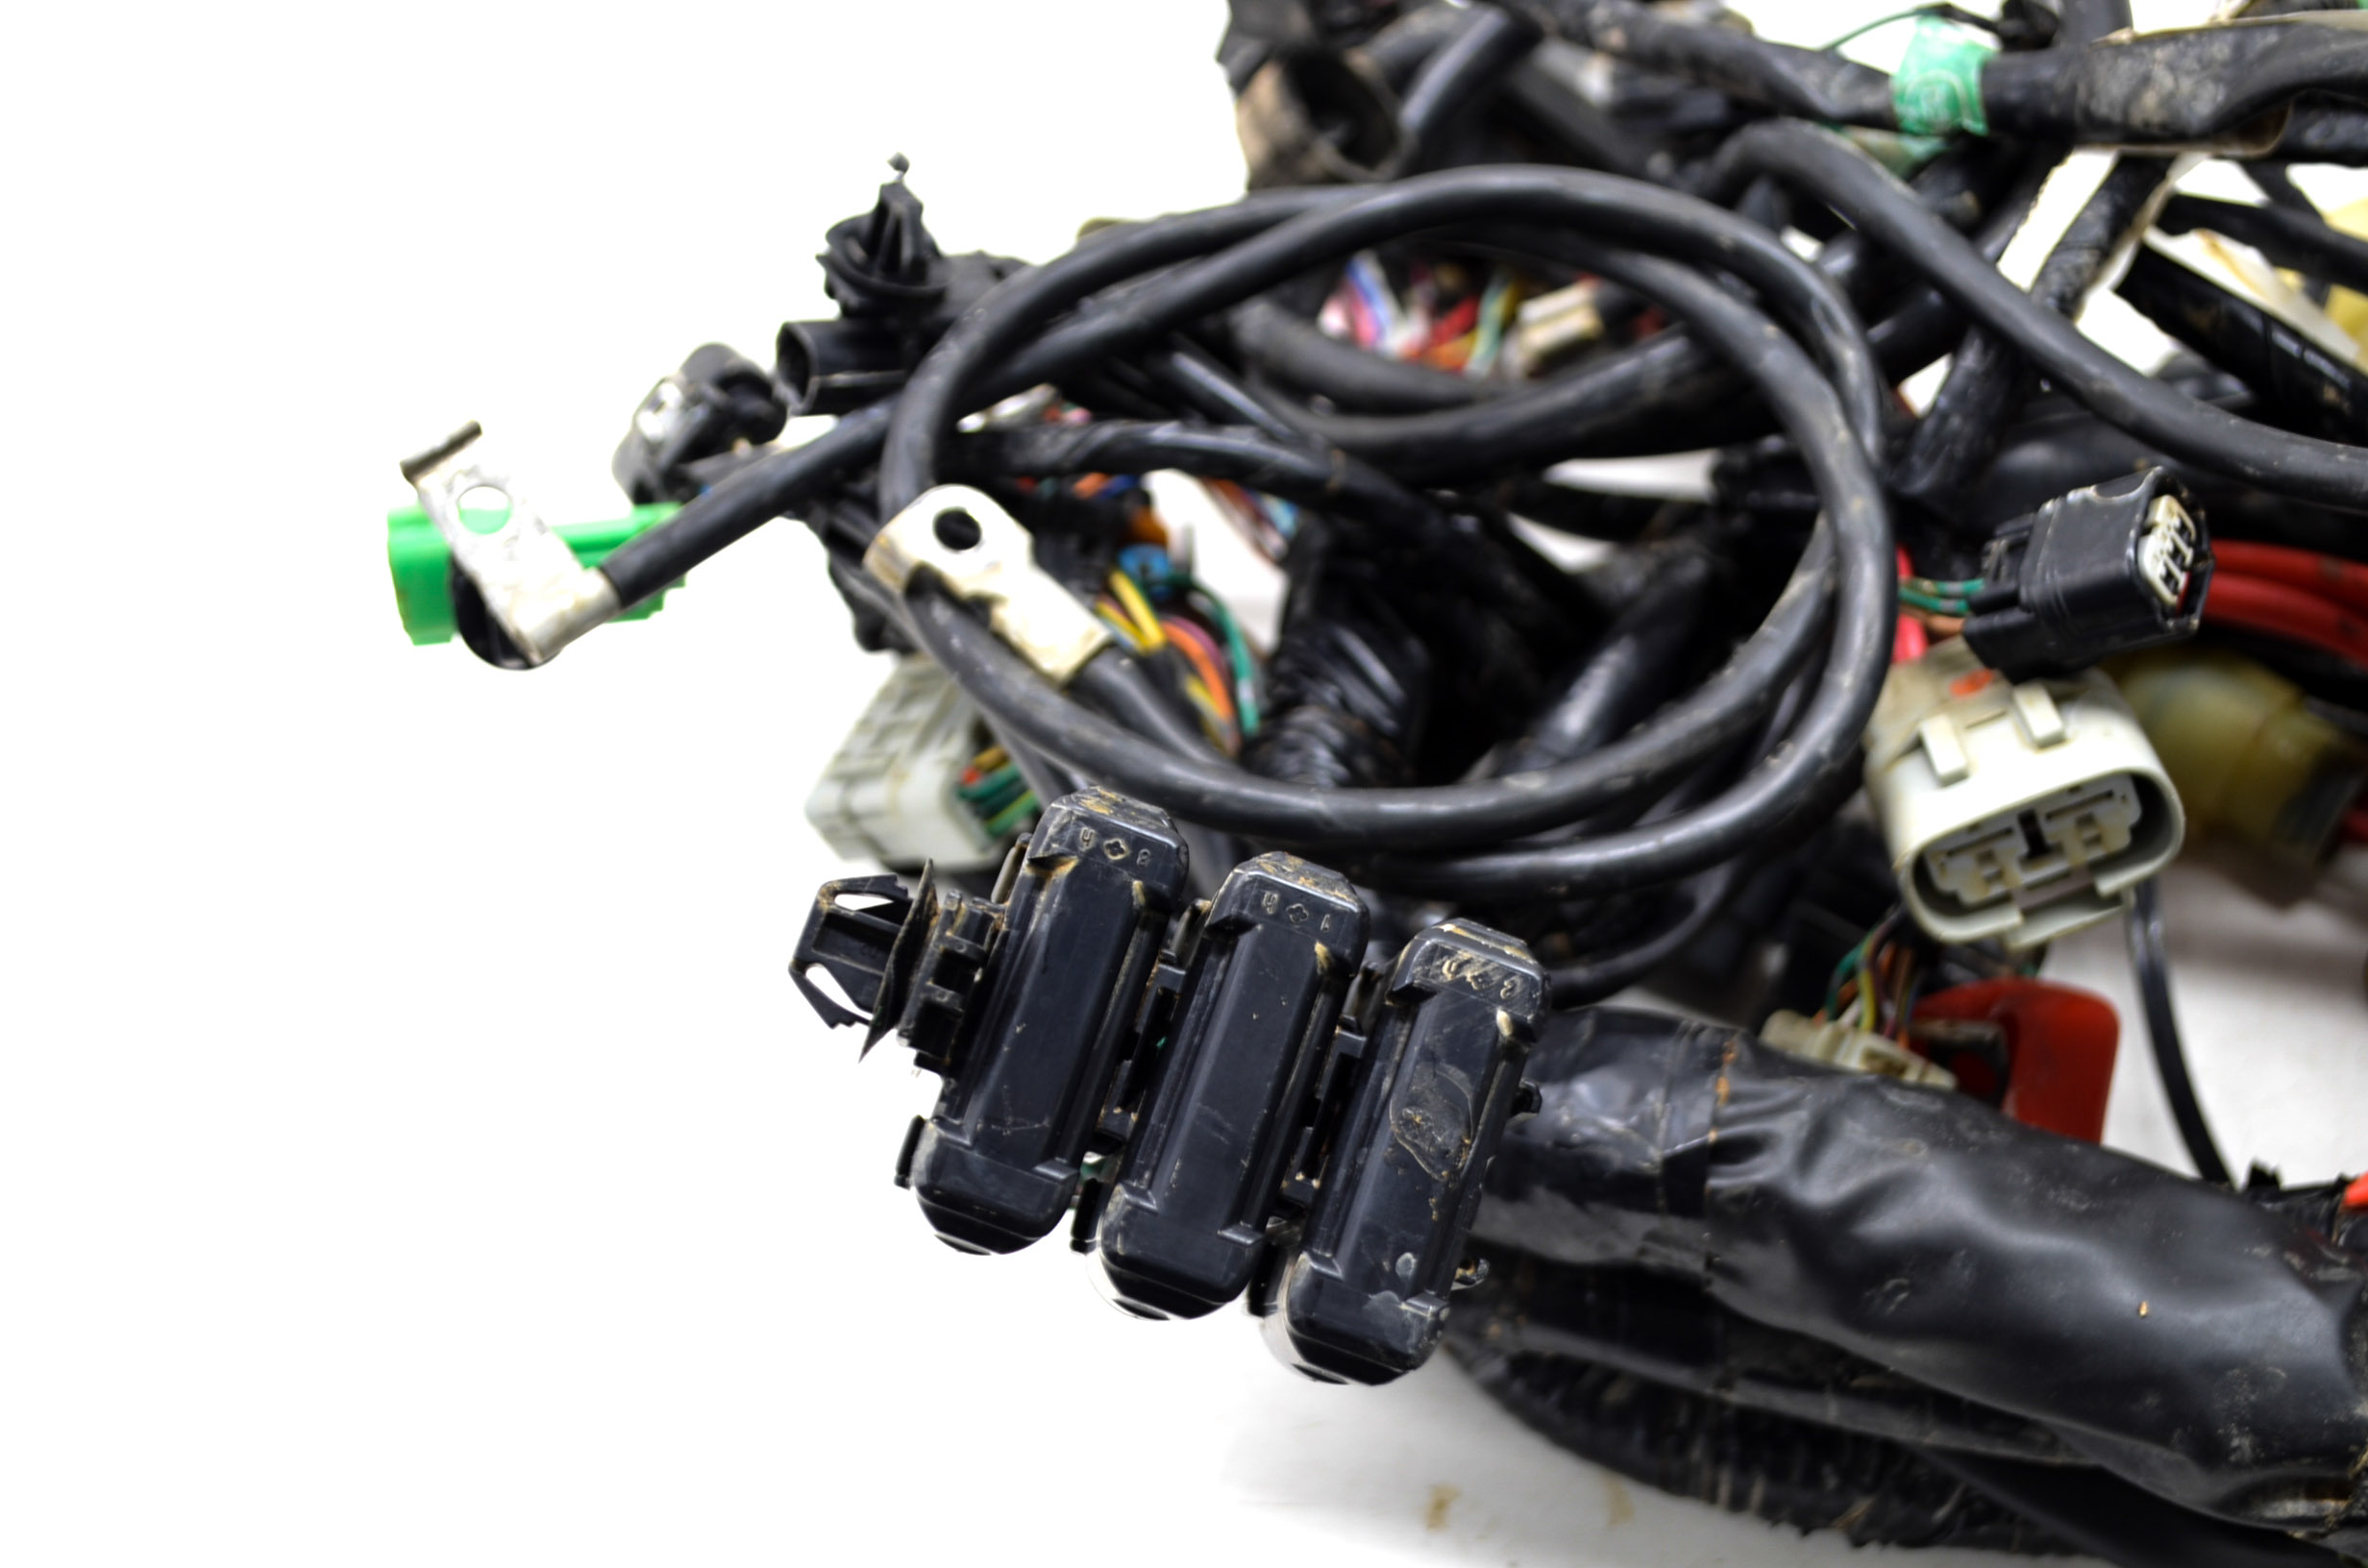 1861 9 12 honda foreman 500 wire harness electrical wiring trx500fpe 4x4 Honda Foreman 450 Lifted at bayanpartner.co